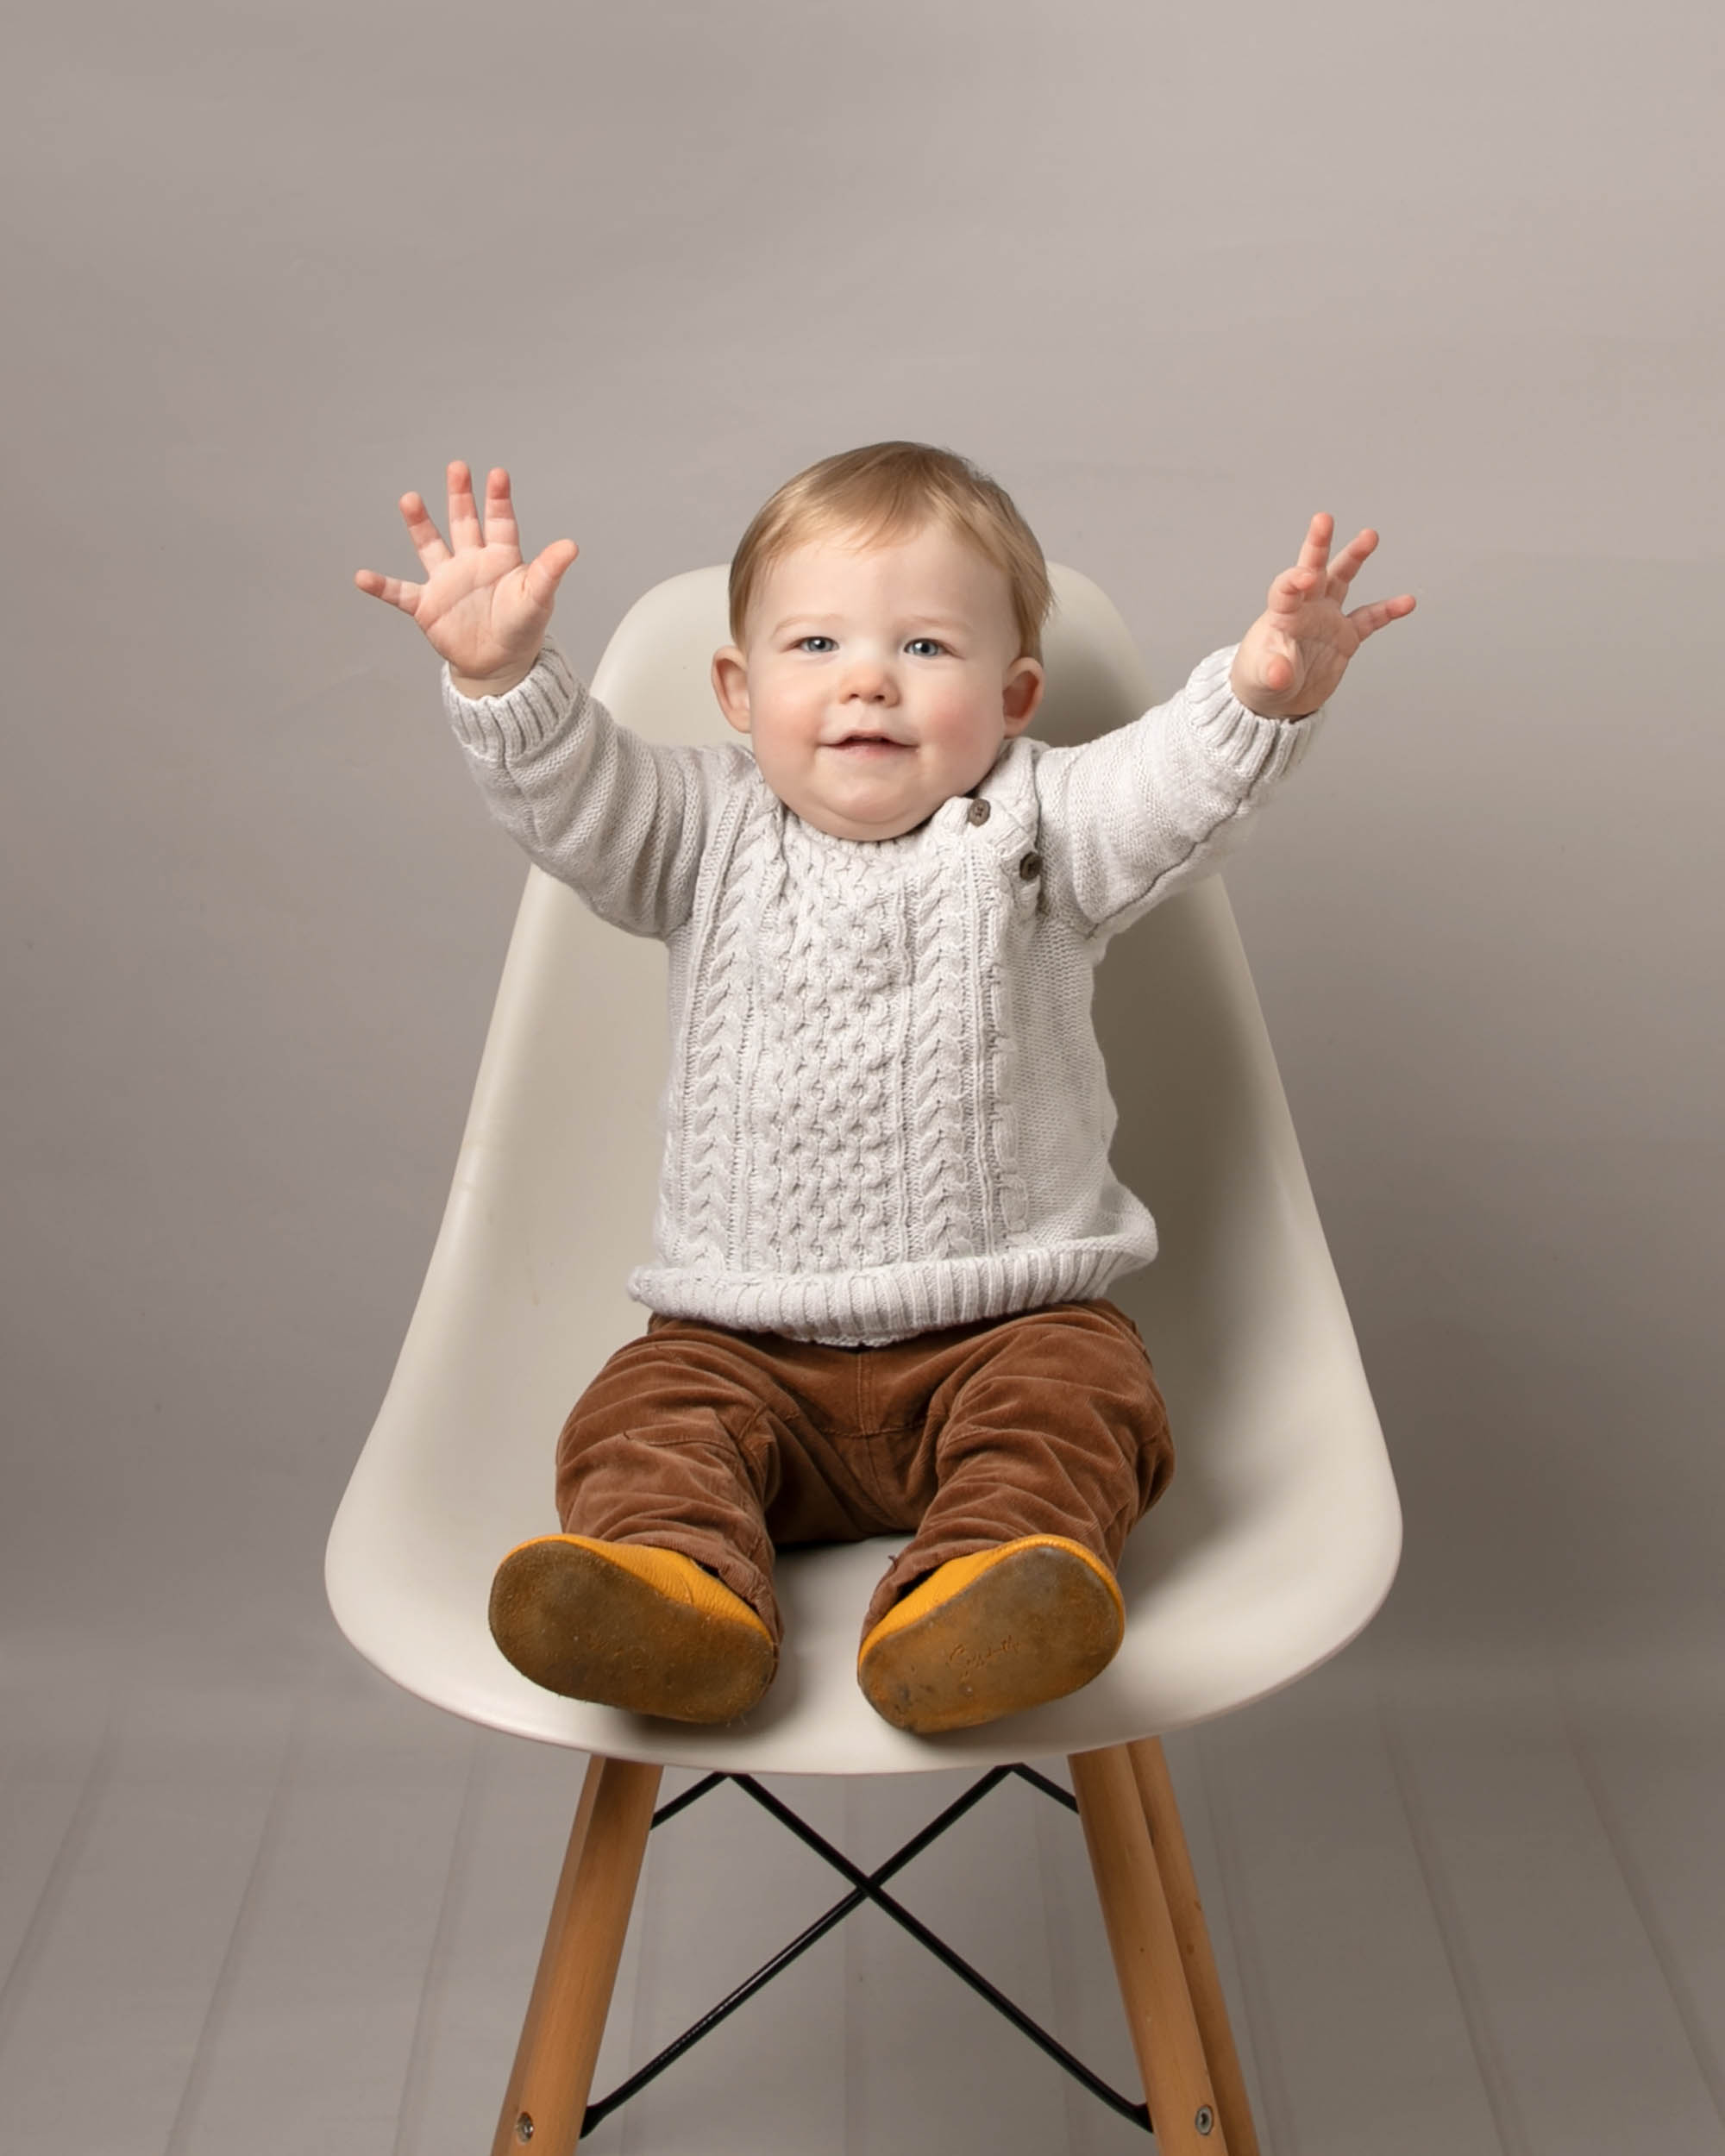 Baby on chair in cream jumper